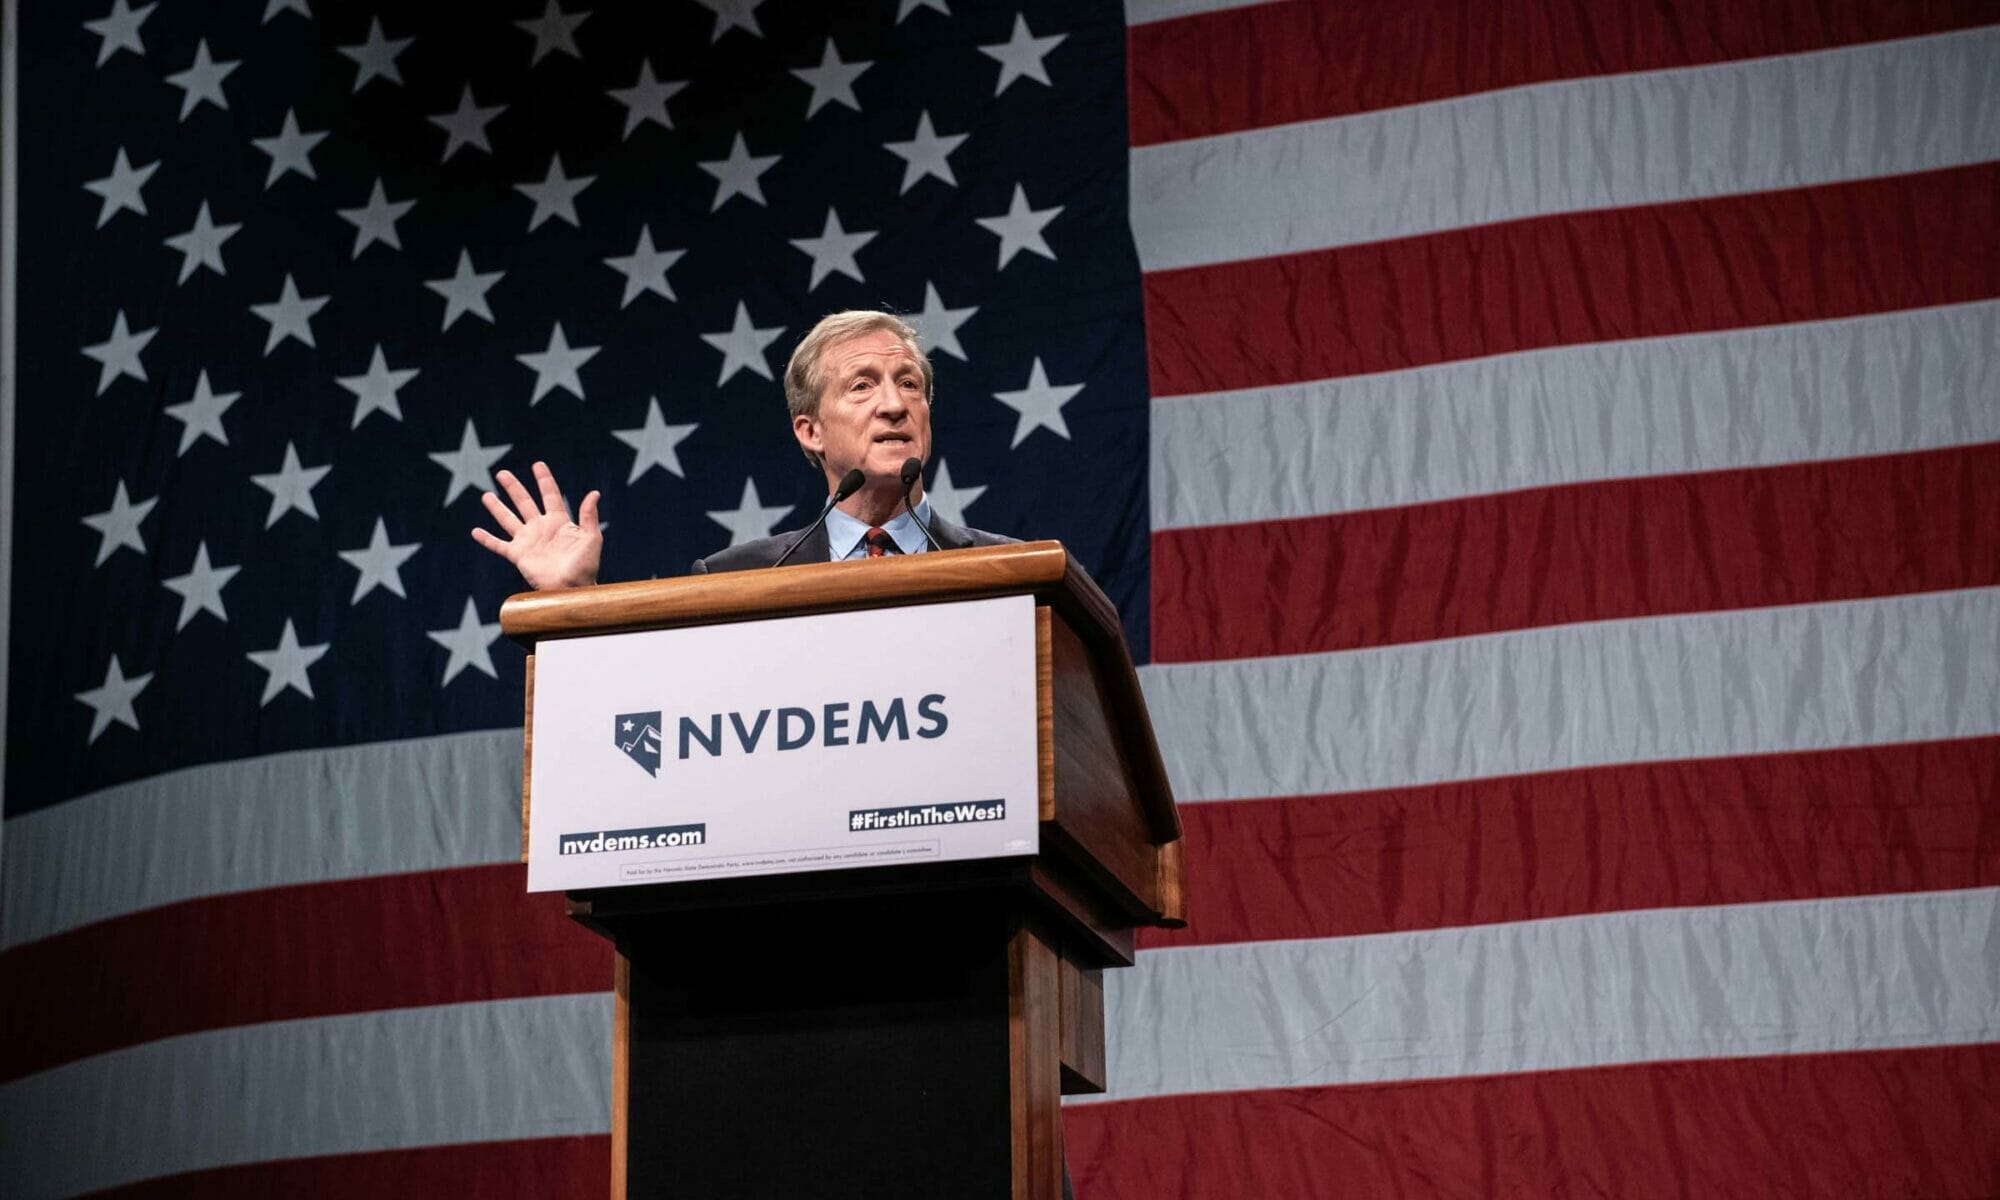 Tom Steyer speaks on stage at Nevada State Democratic Party dinner